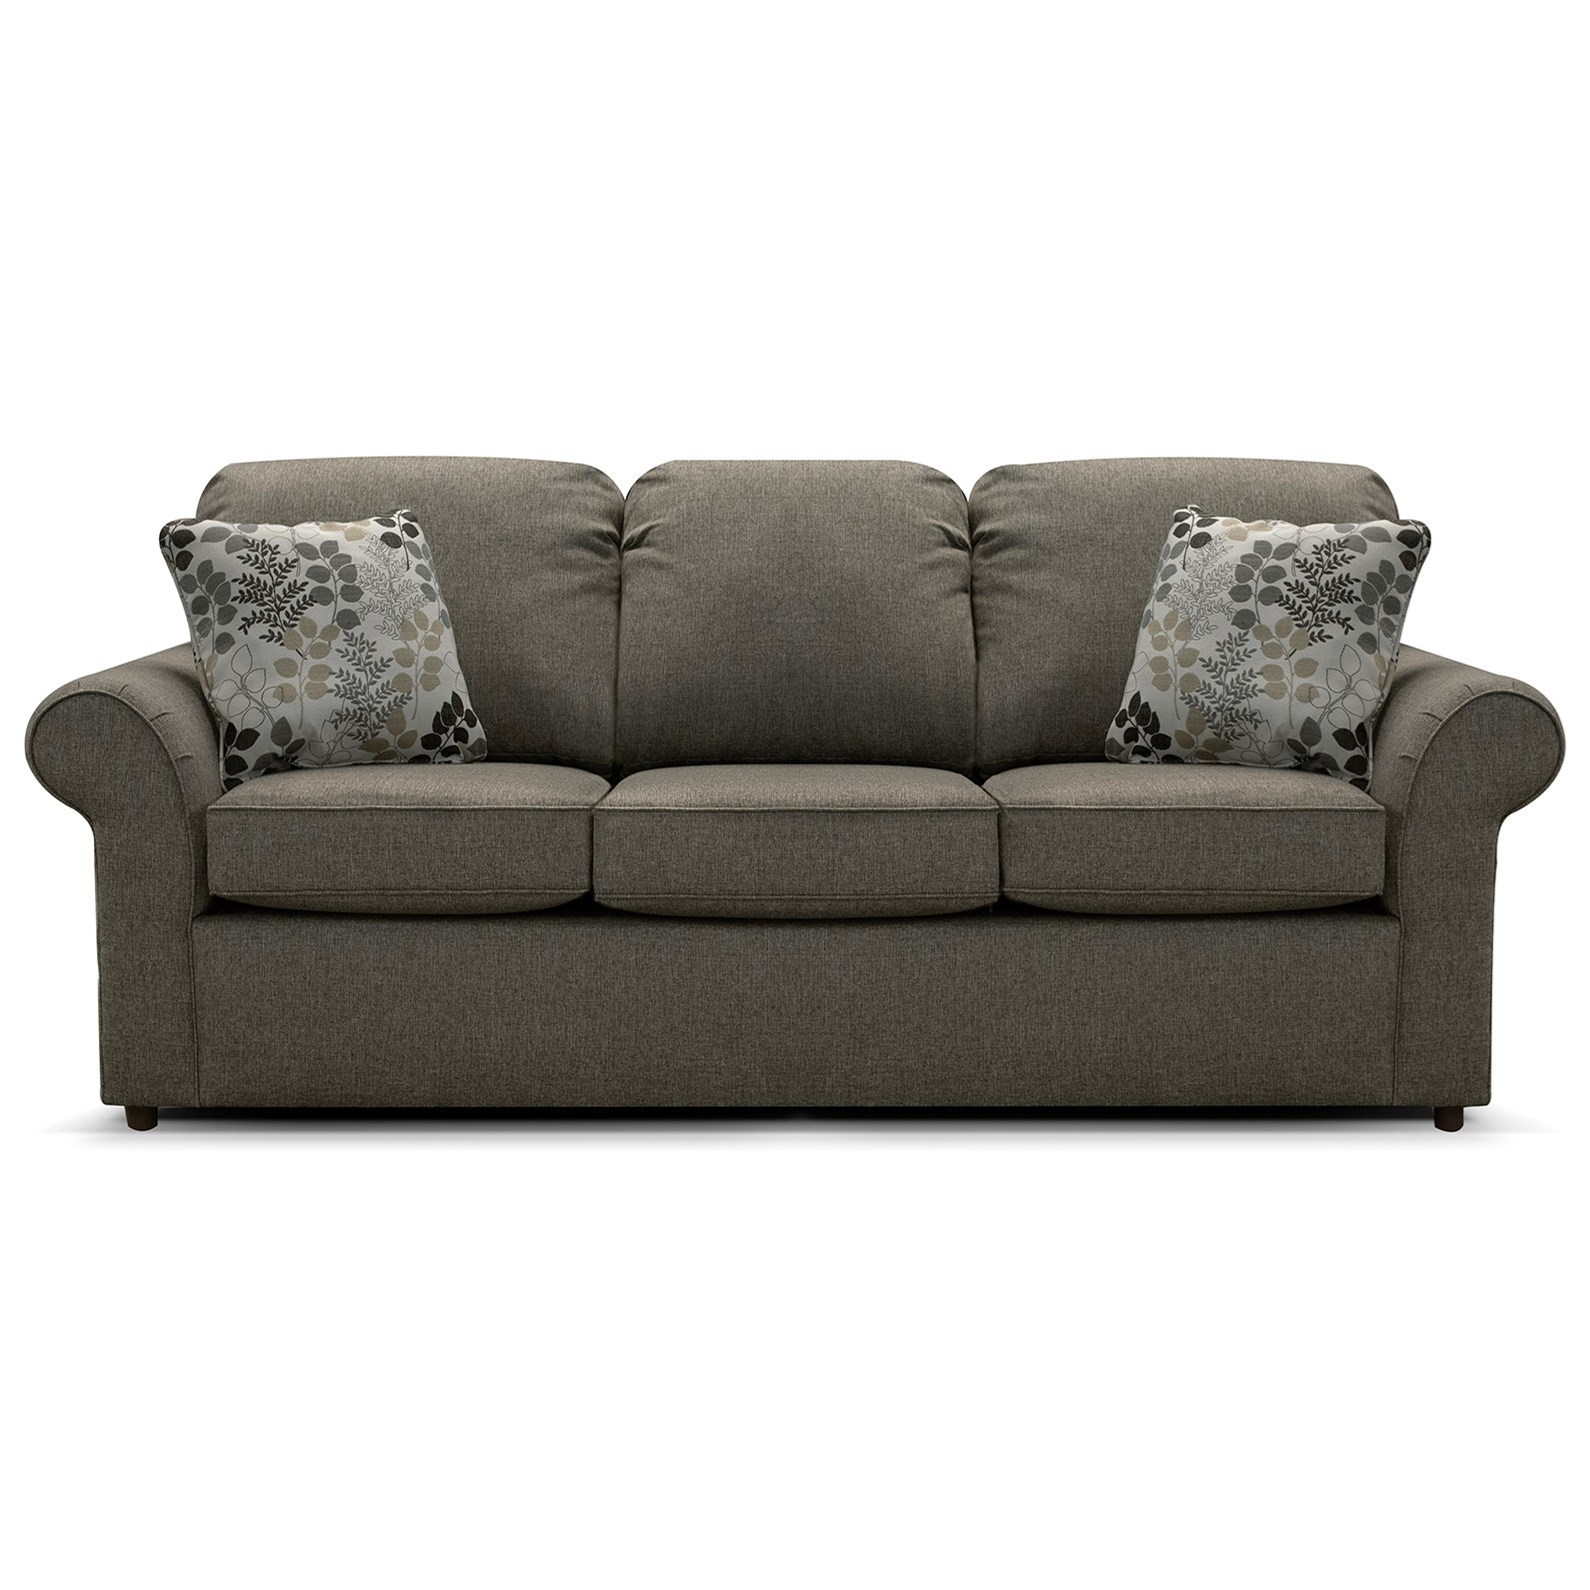 Malibu Sofa by England at SuperStore